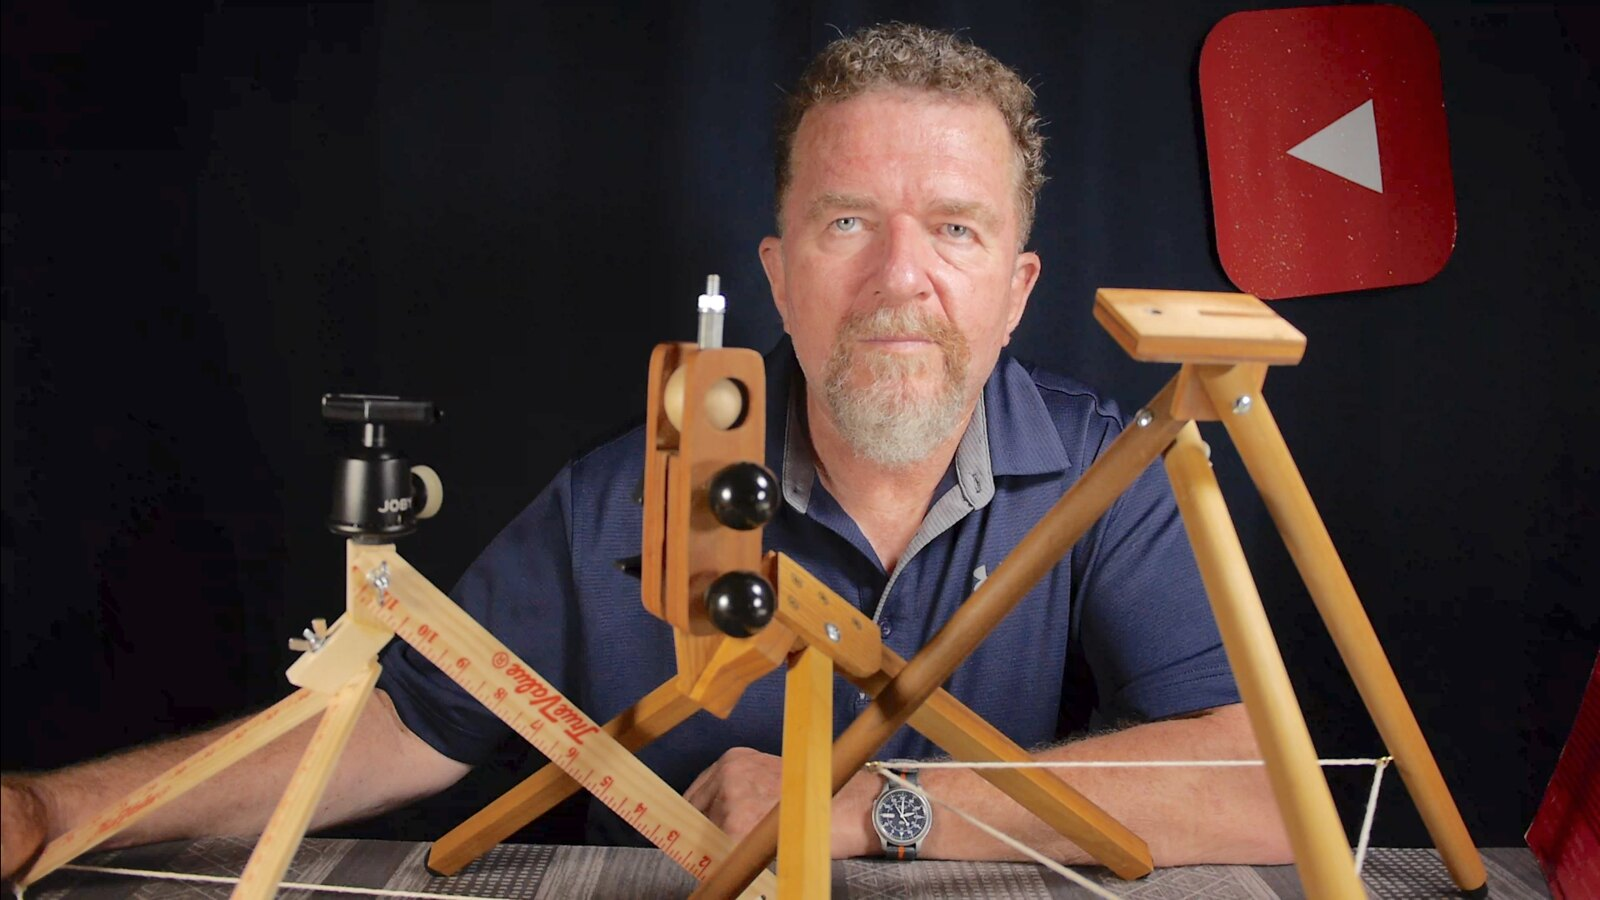 Joe and his tabletop tripods